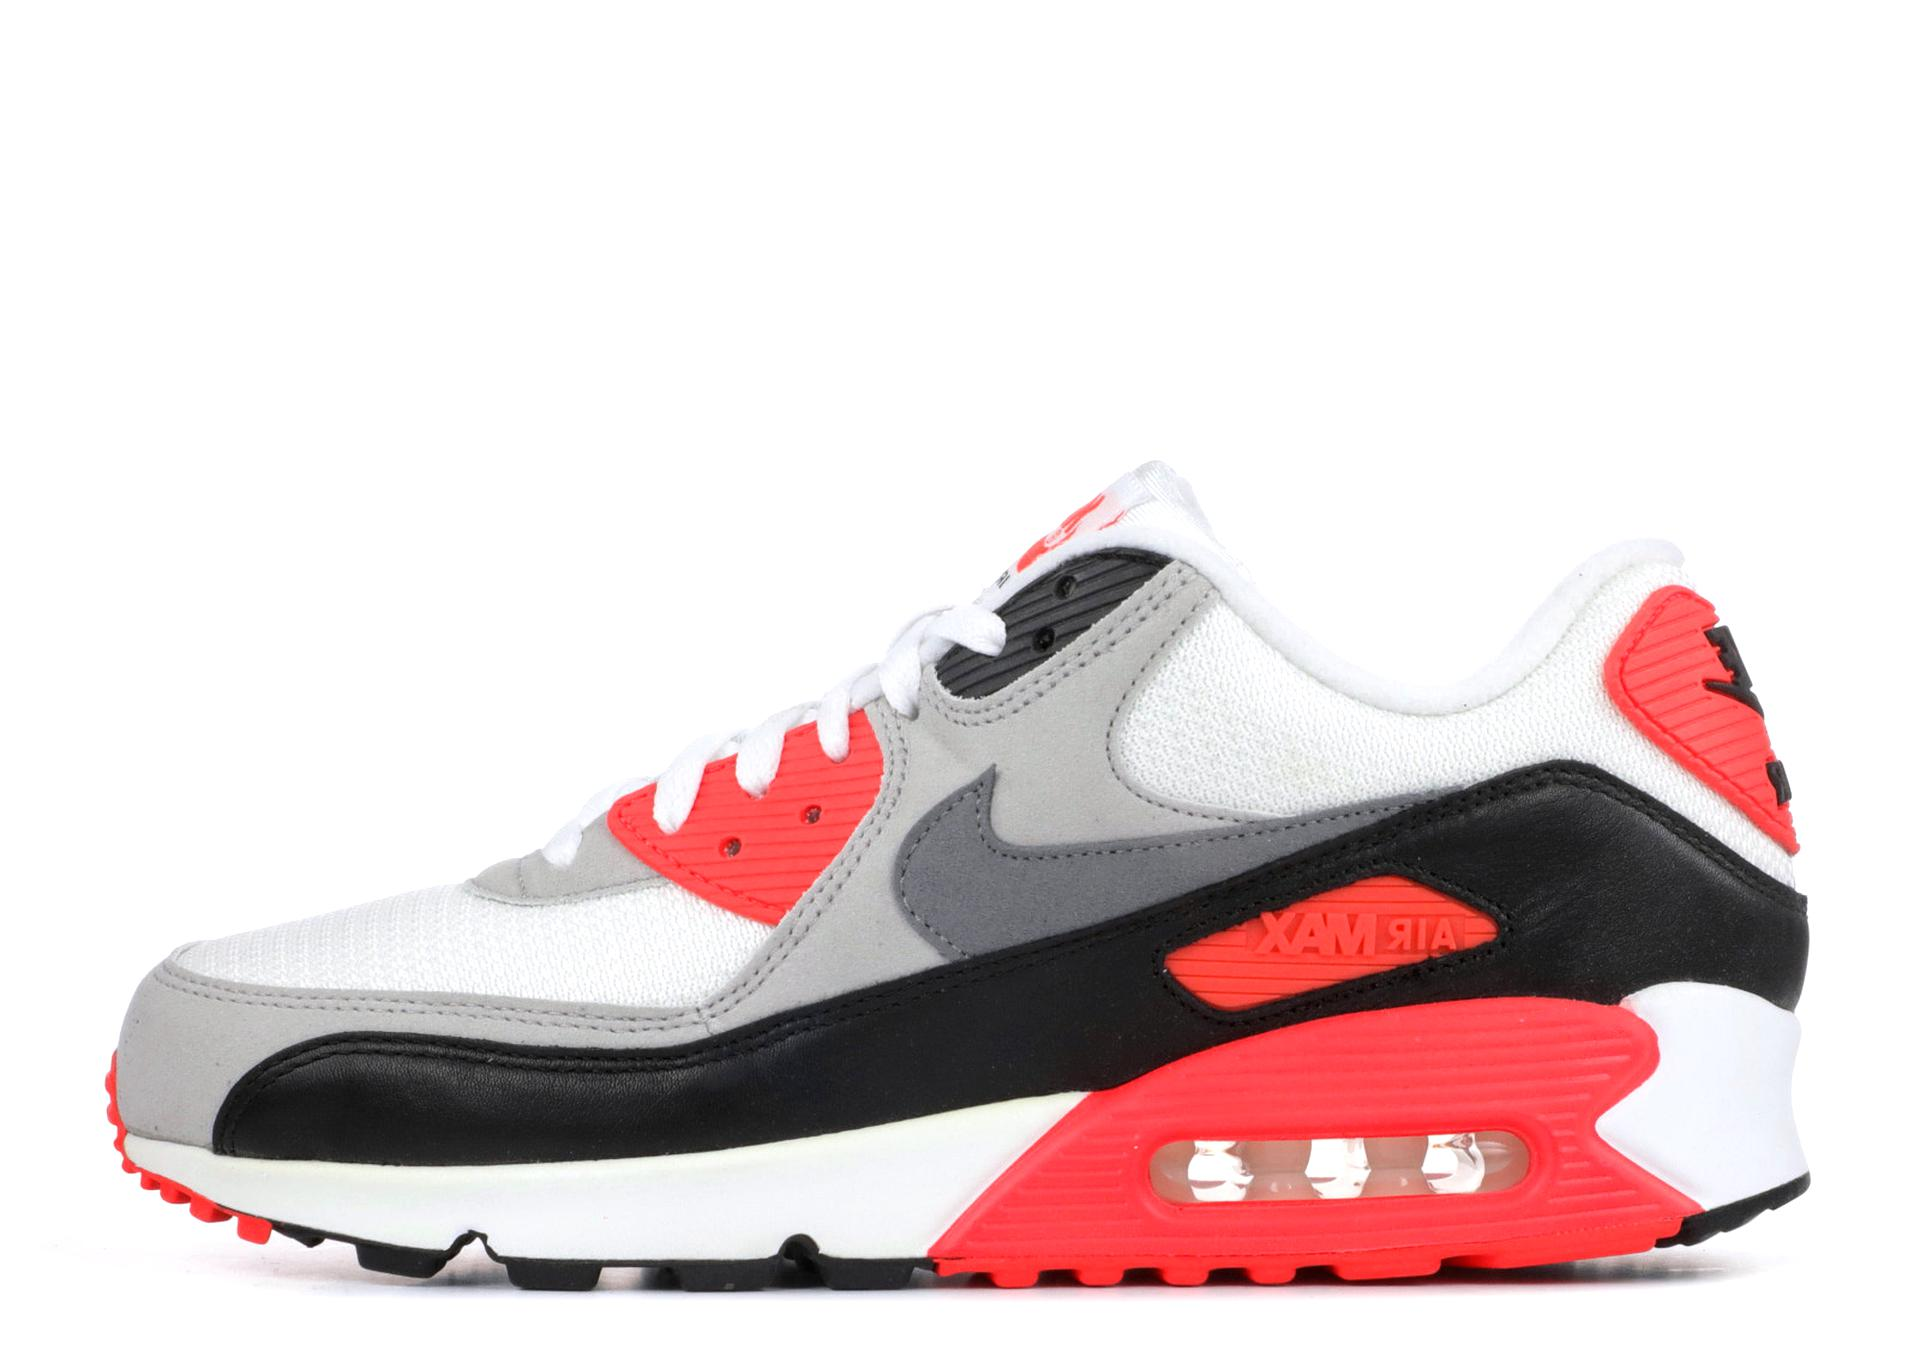 Nike Air Max 90 Infrared d'occasion